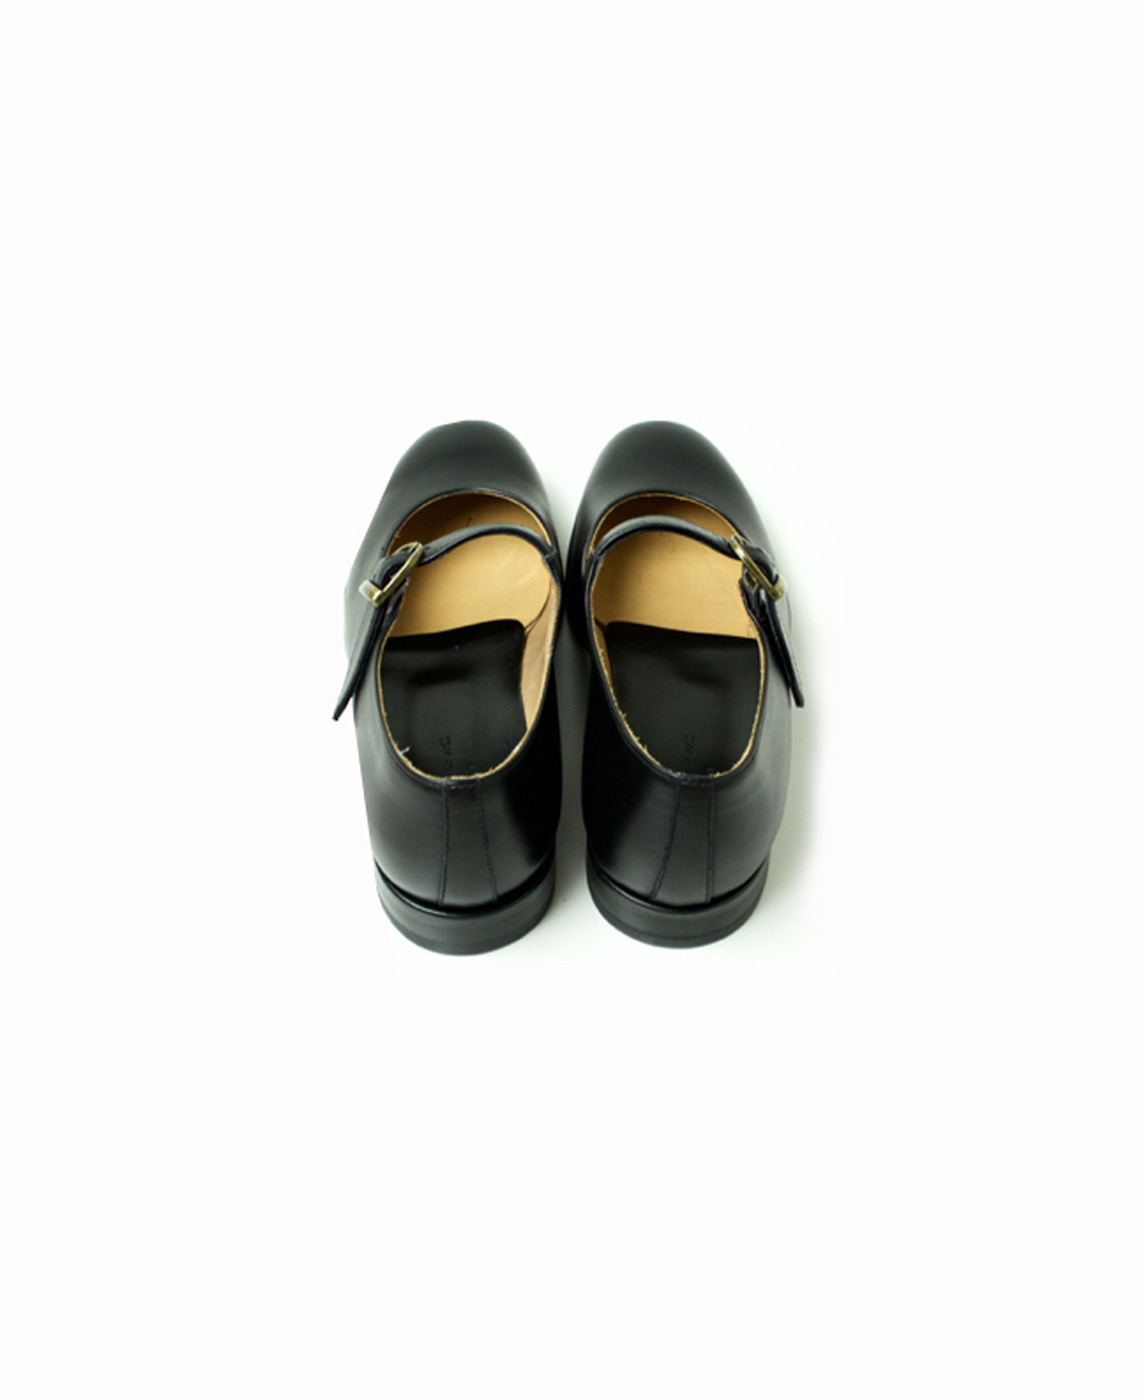 CMDS1701 ONE STRAP SHOES